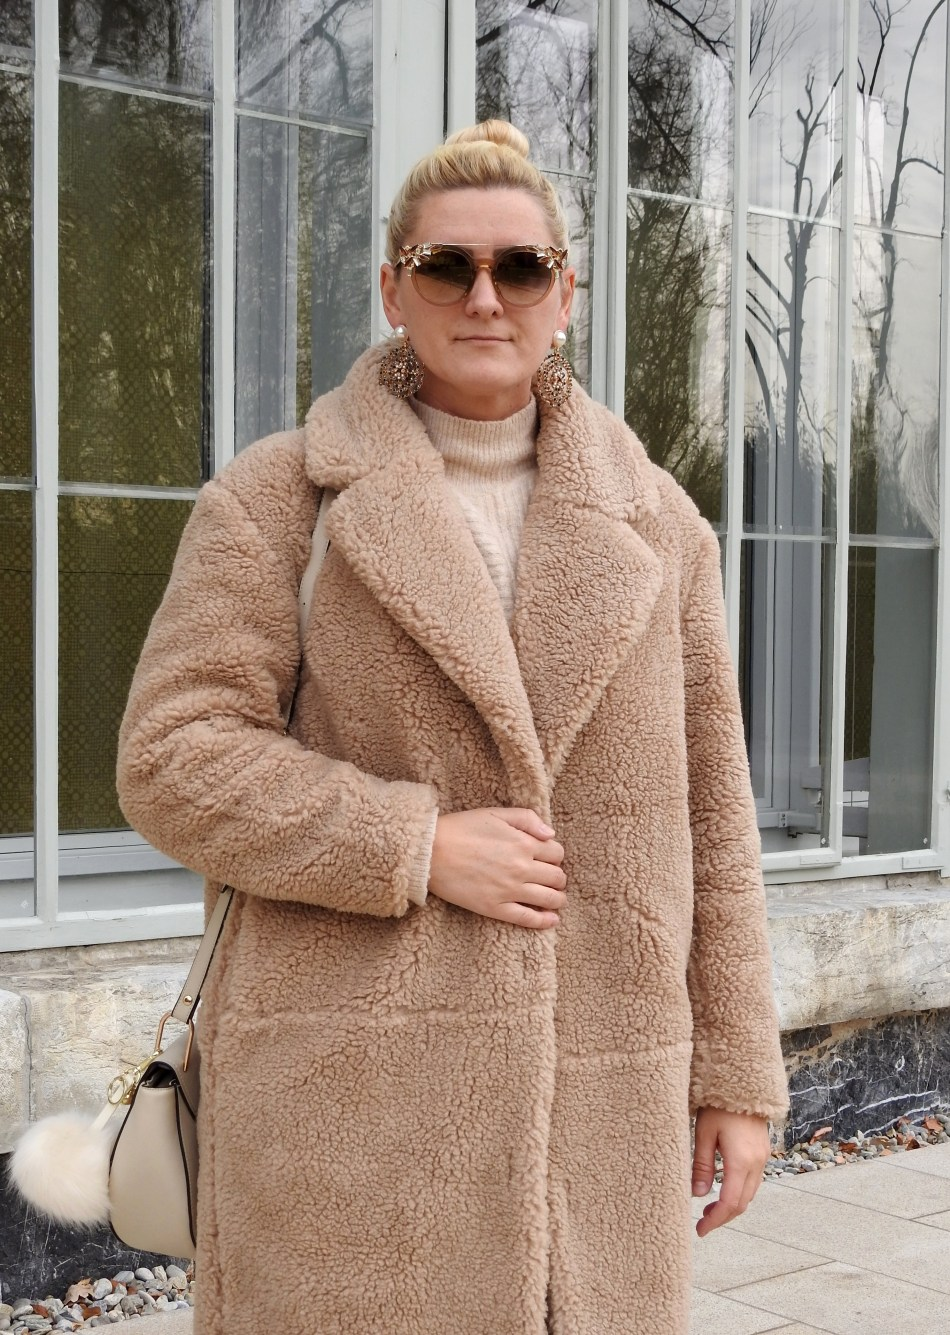 Teddy-Coat-Sunglasses-Shades-NoraNYC-Chloe-Drew-Bag-Zara-Earrings-Beige-carrieslifestyle-Tamara-Prutsch